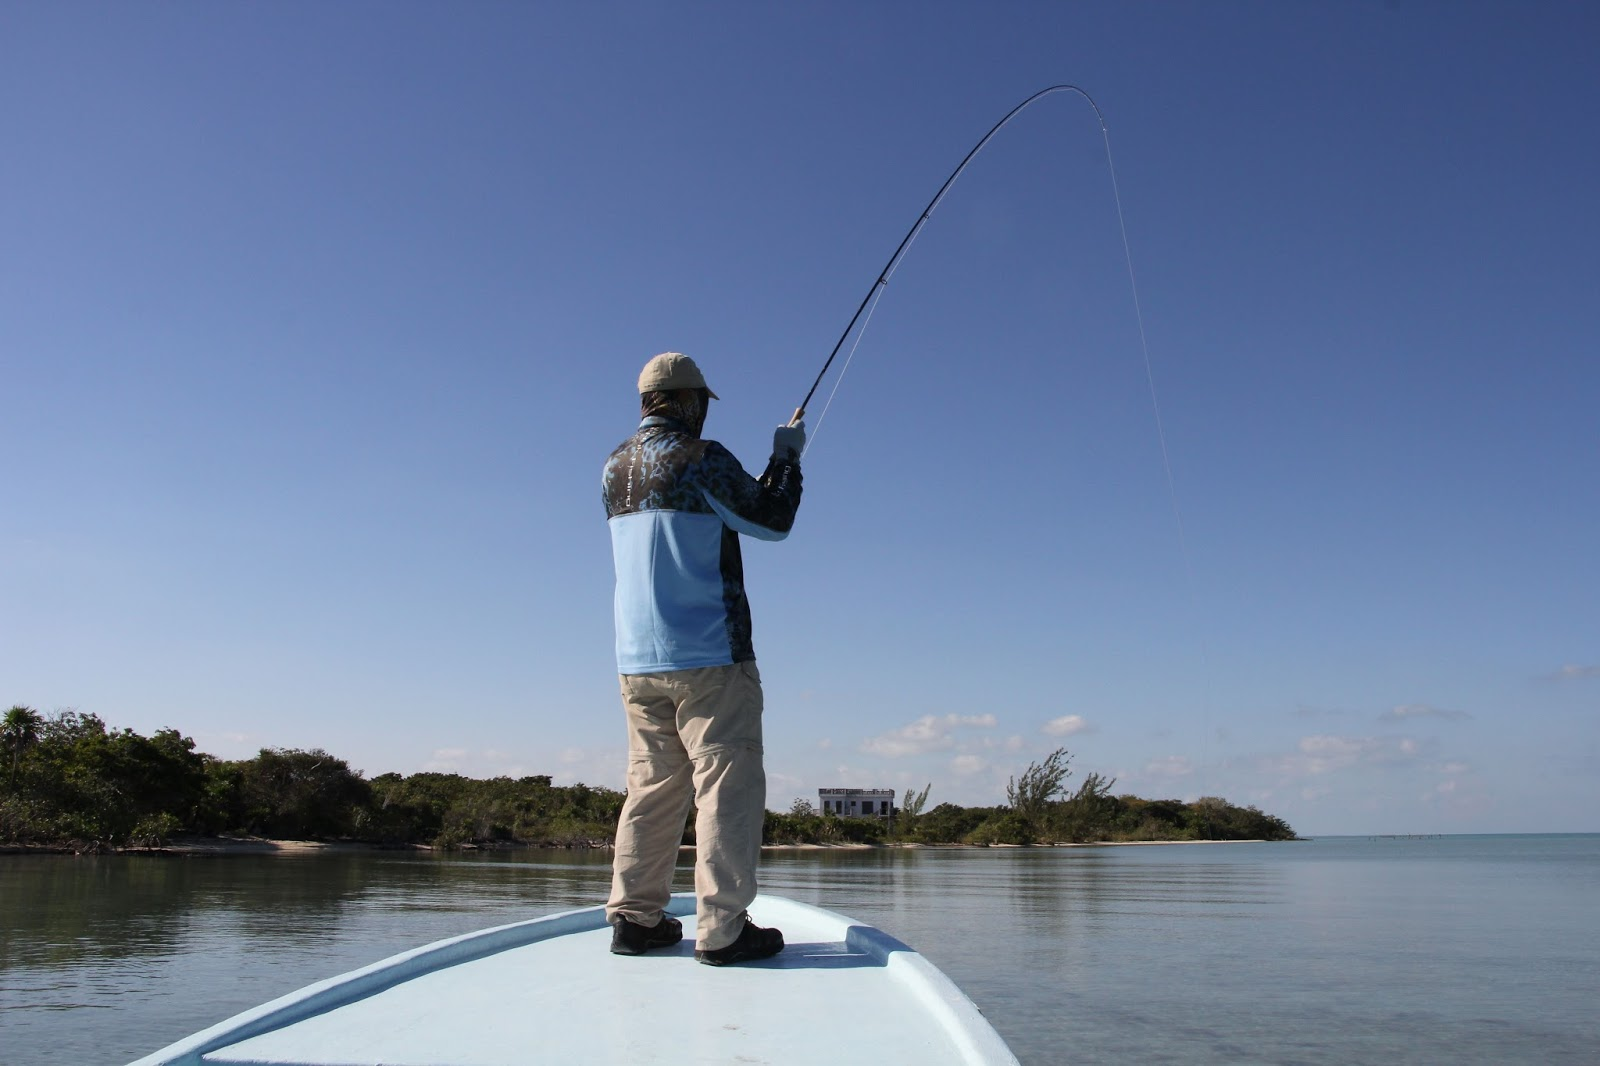 Central alberta fly tying club fly fishing in belize for Belize fishing charters